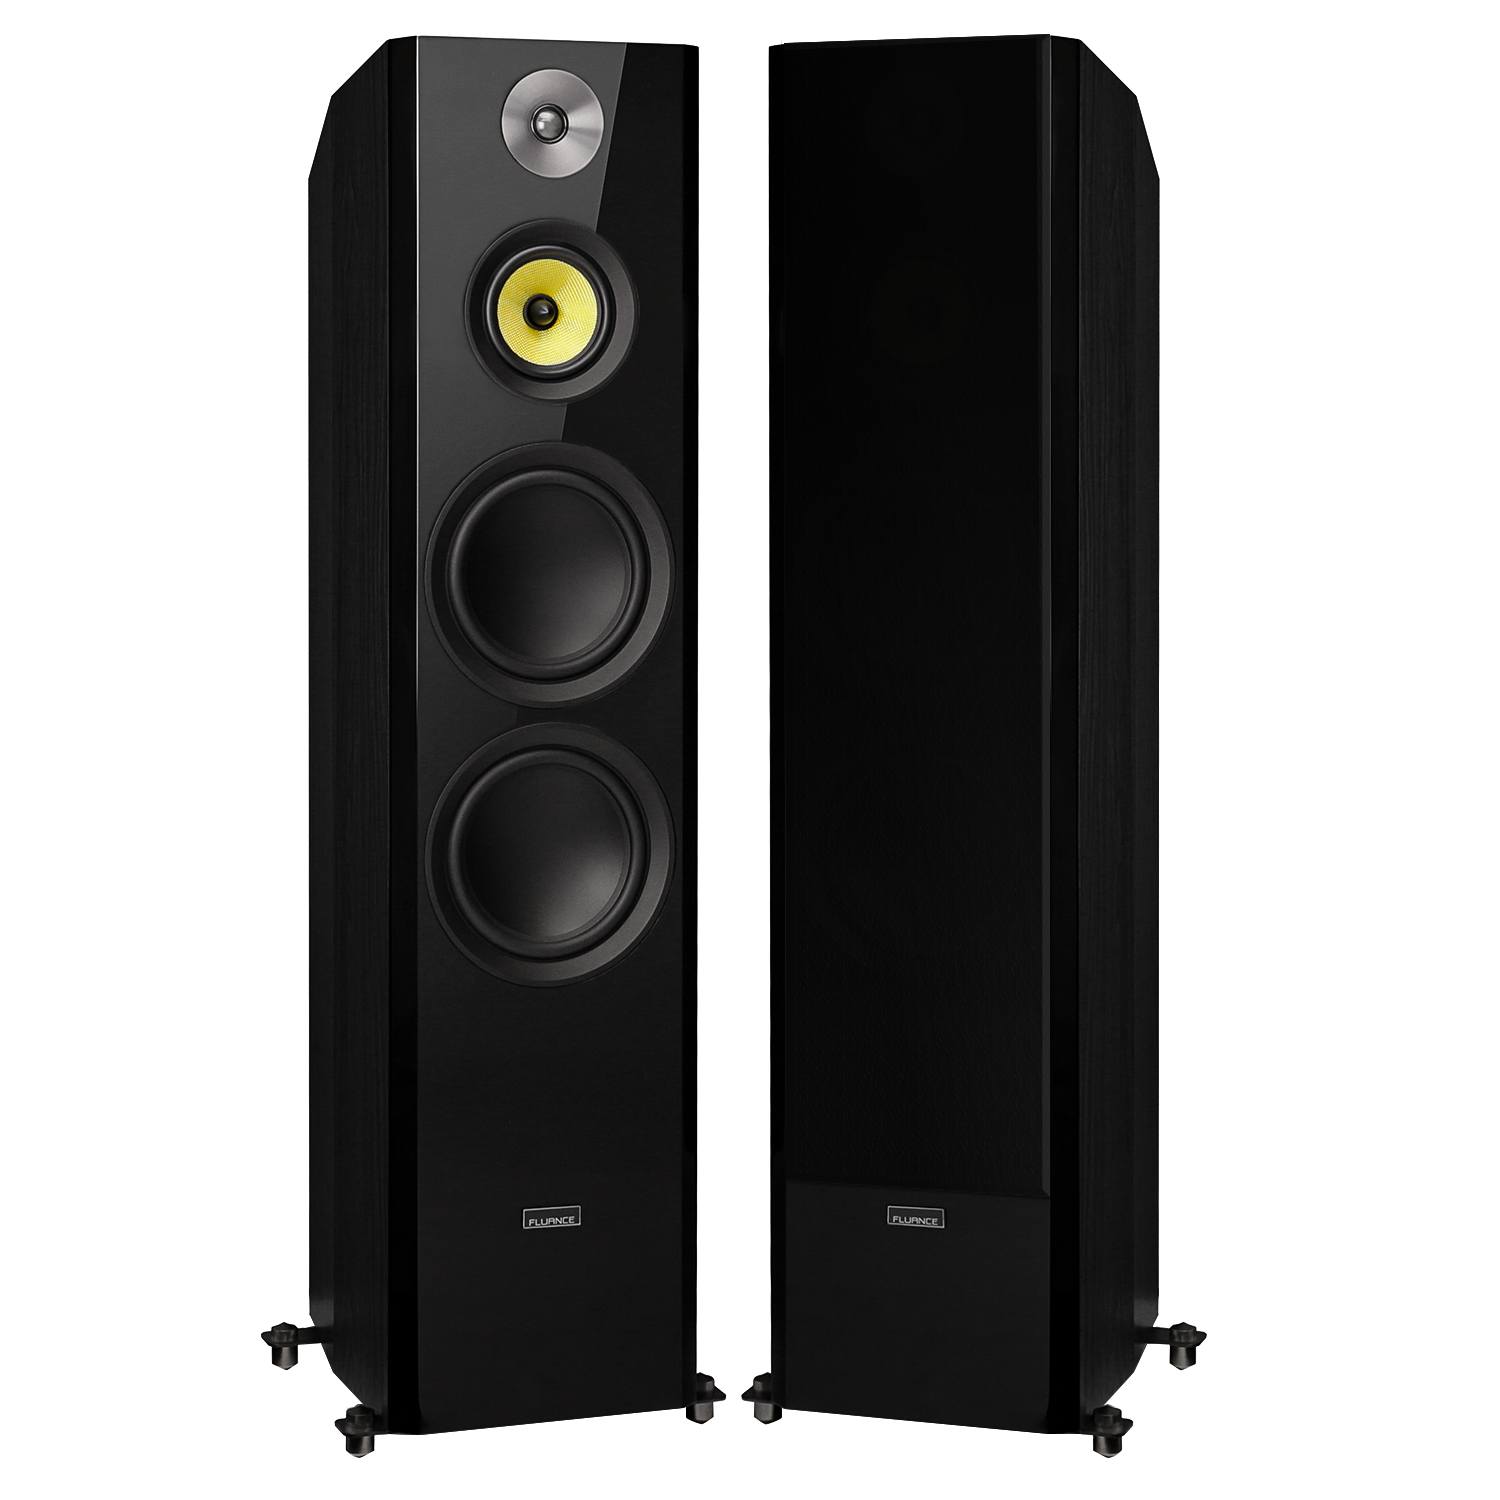 p tower svs rapallo speakers prime floorstanding floor standing pair